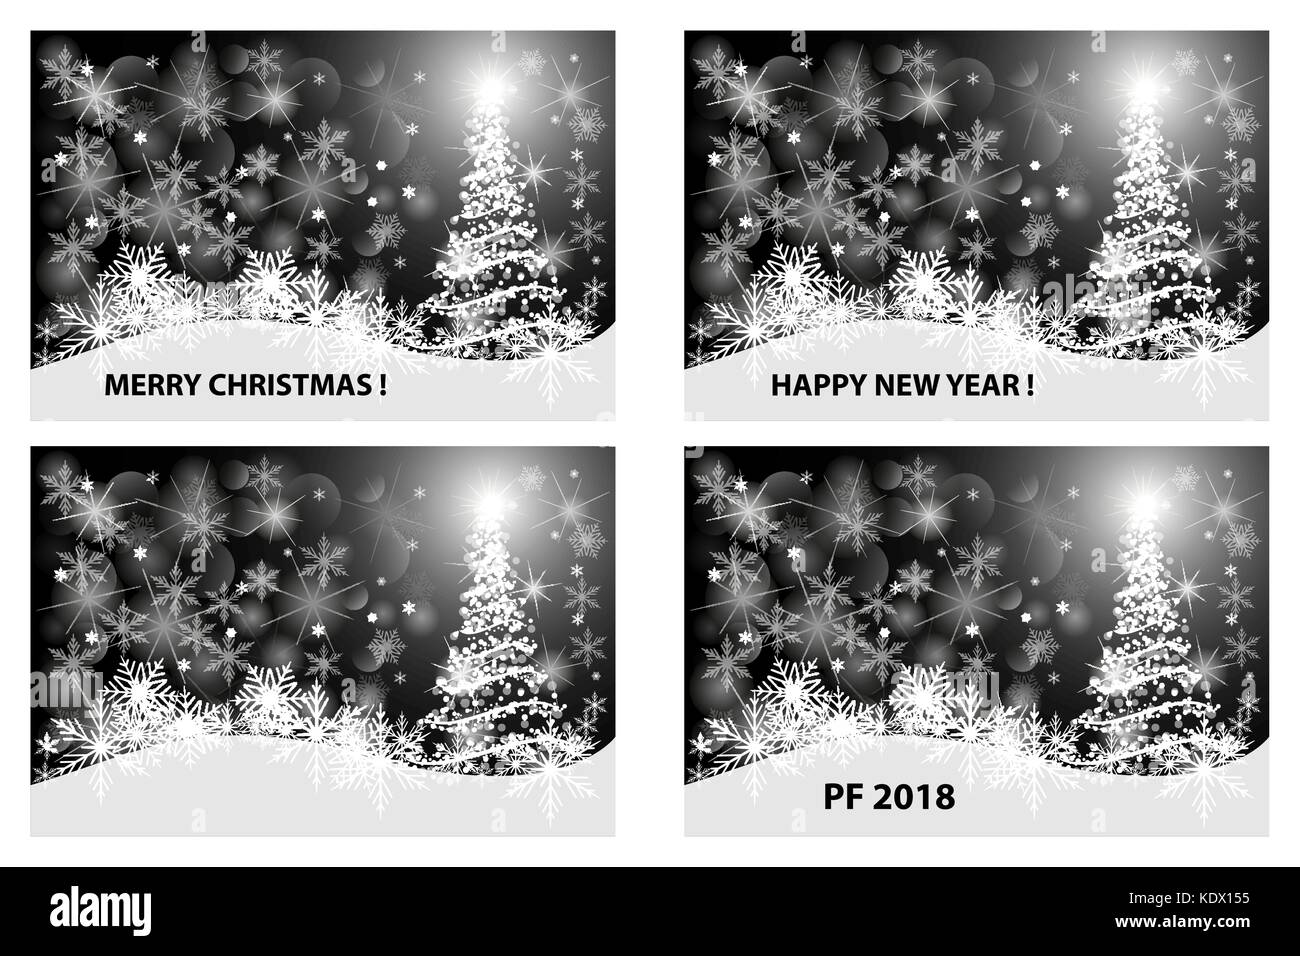 Merry Christmas, Happy New Year, PF 2018, Christmas card - white and ...